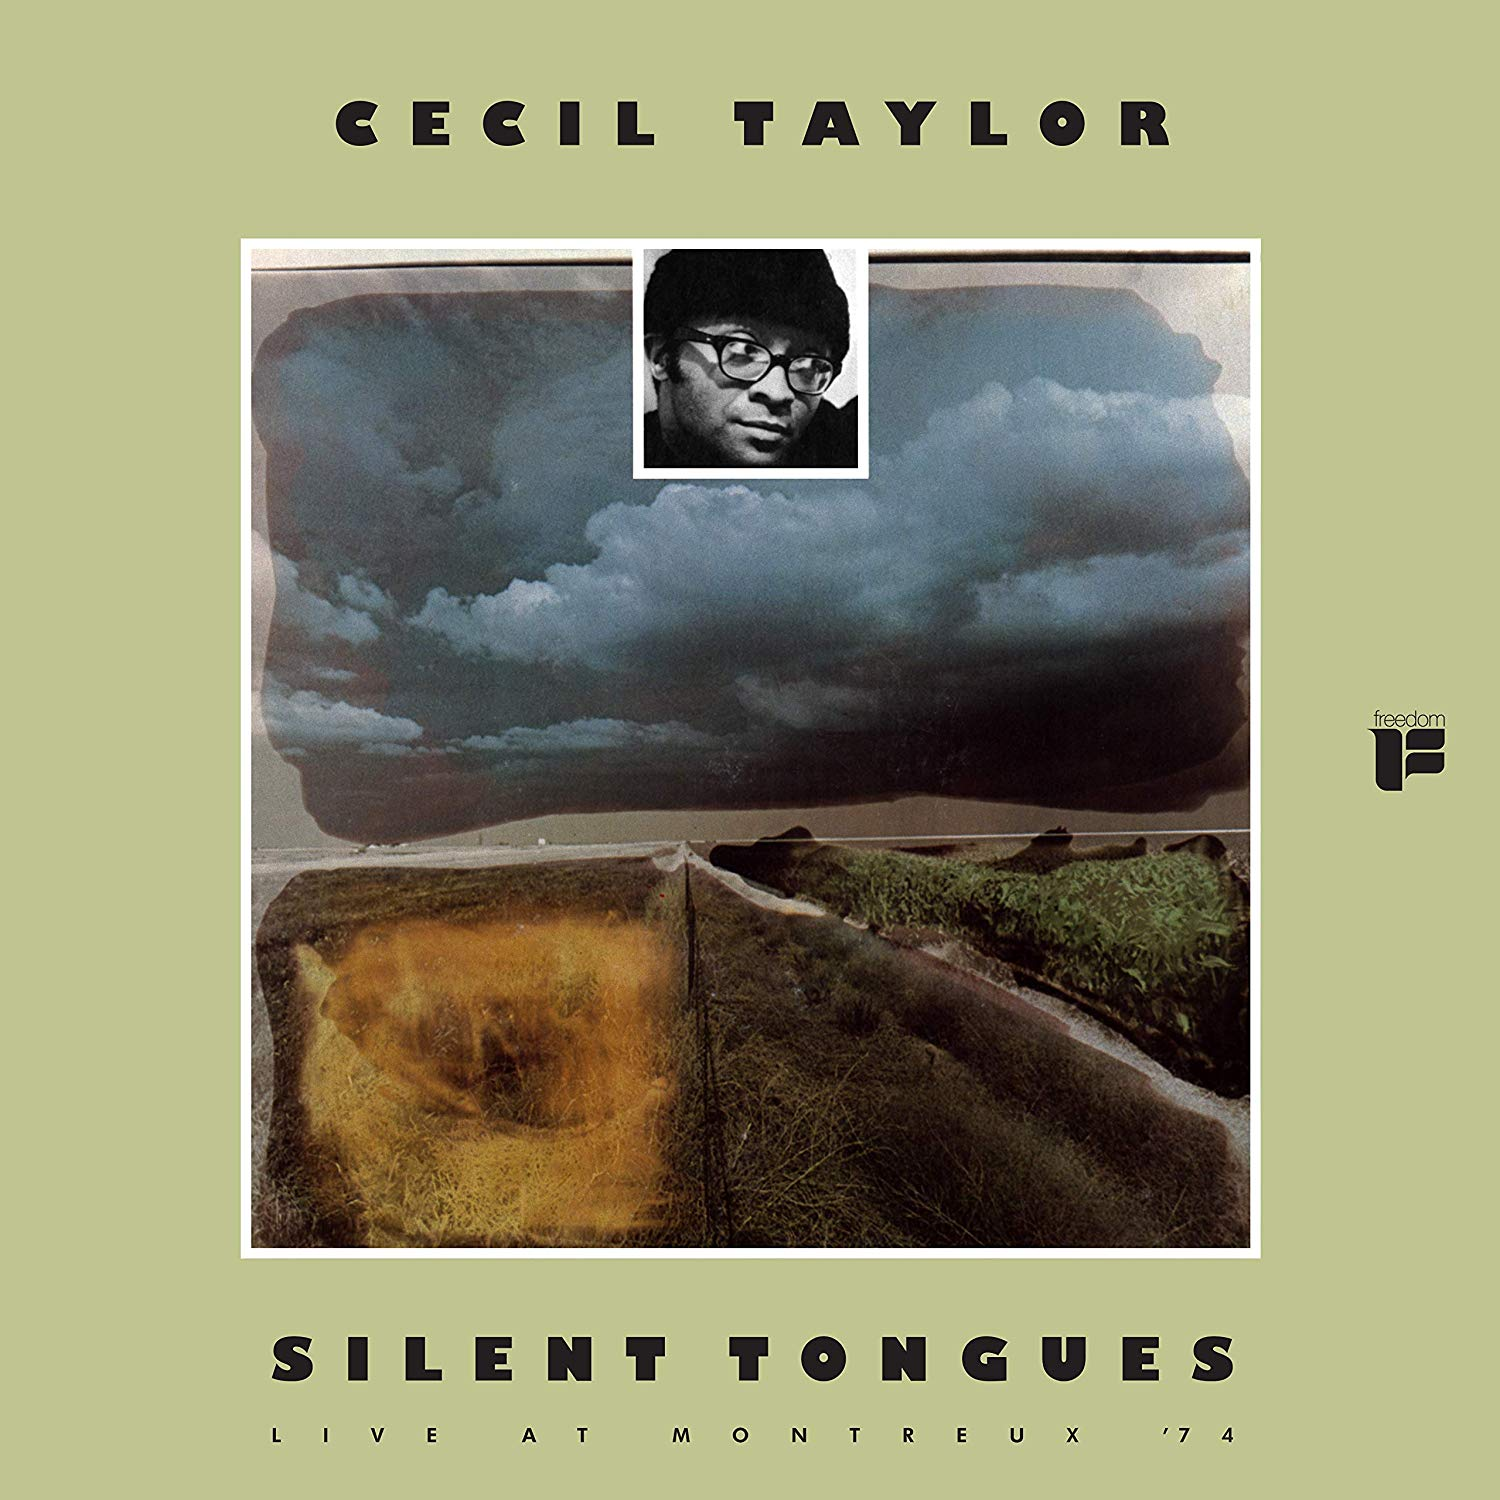 Cecil Taylor - Silent Tongues